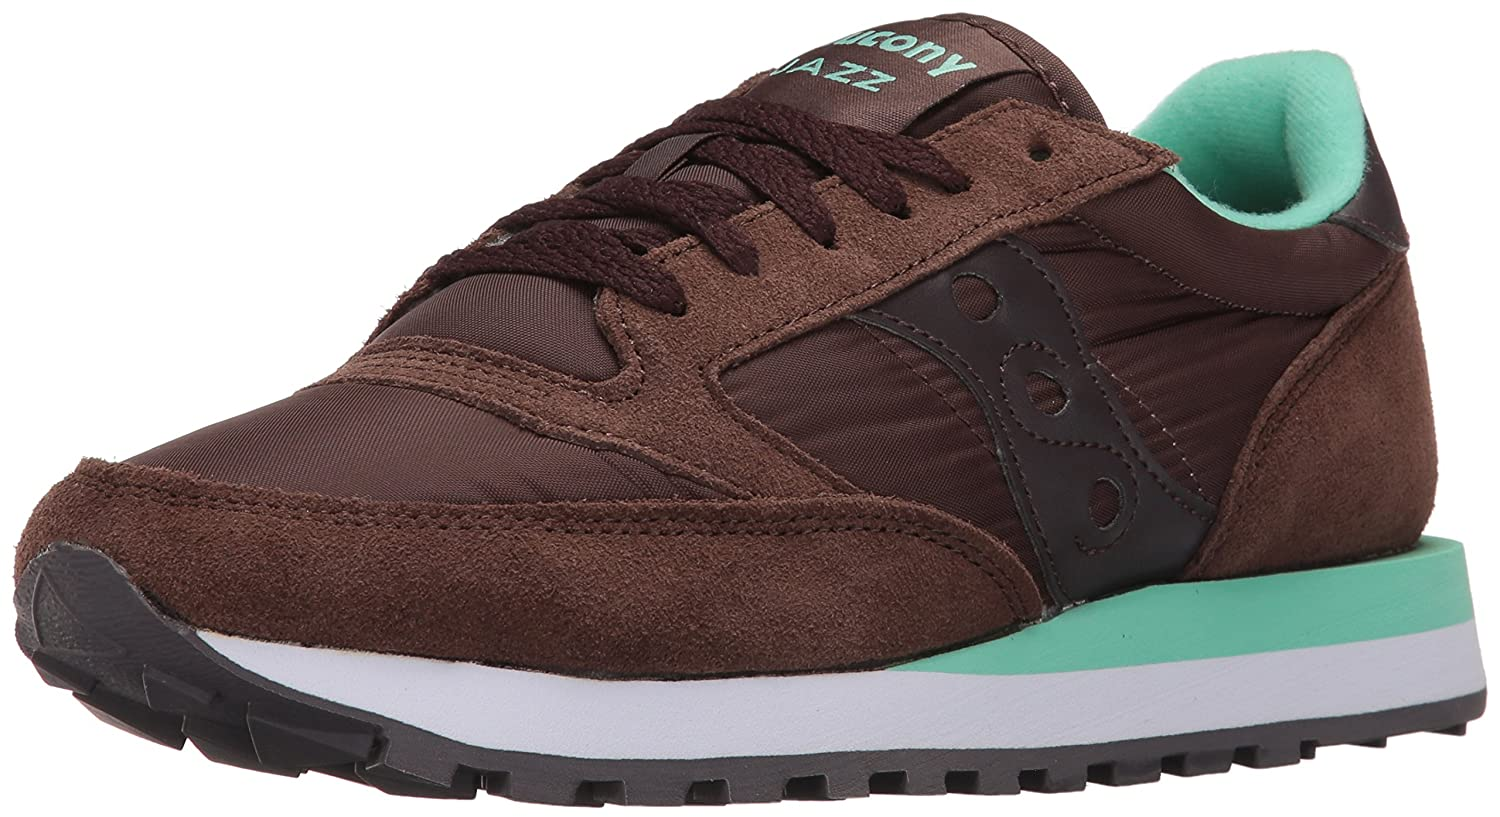 Saucony Originals Women's Jazz Original Sneaker B0189OSUQO 5.5 B(M) US|Brown